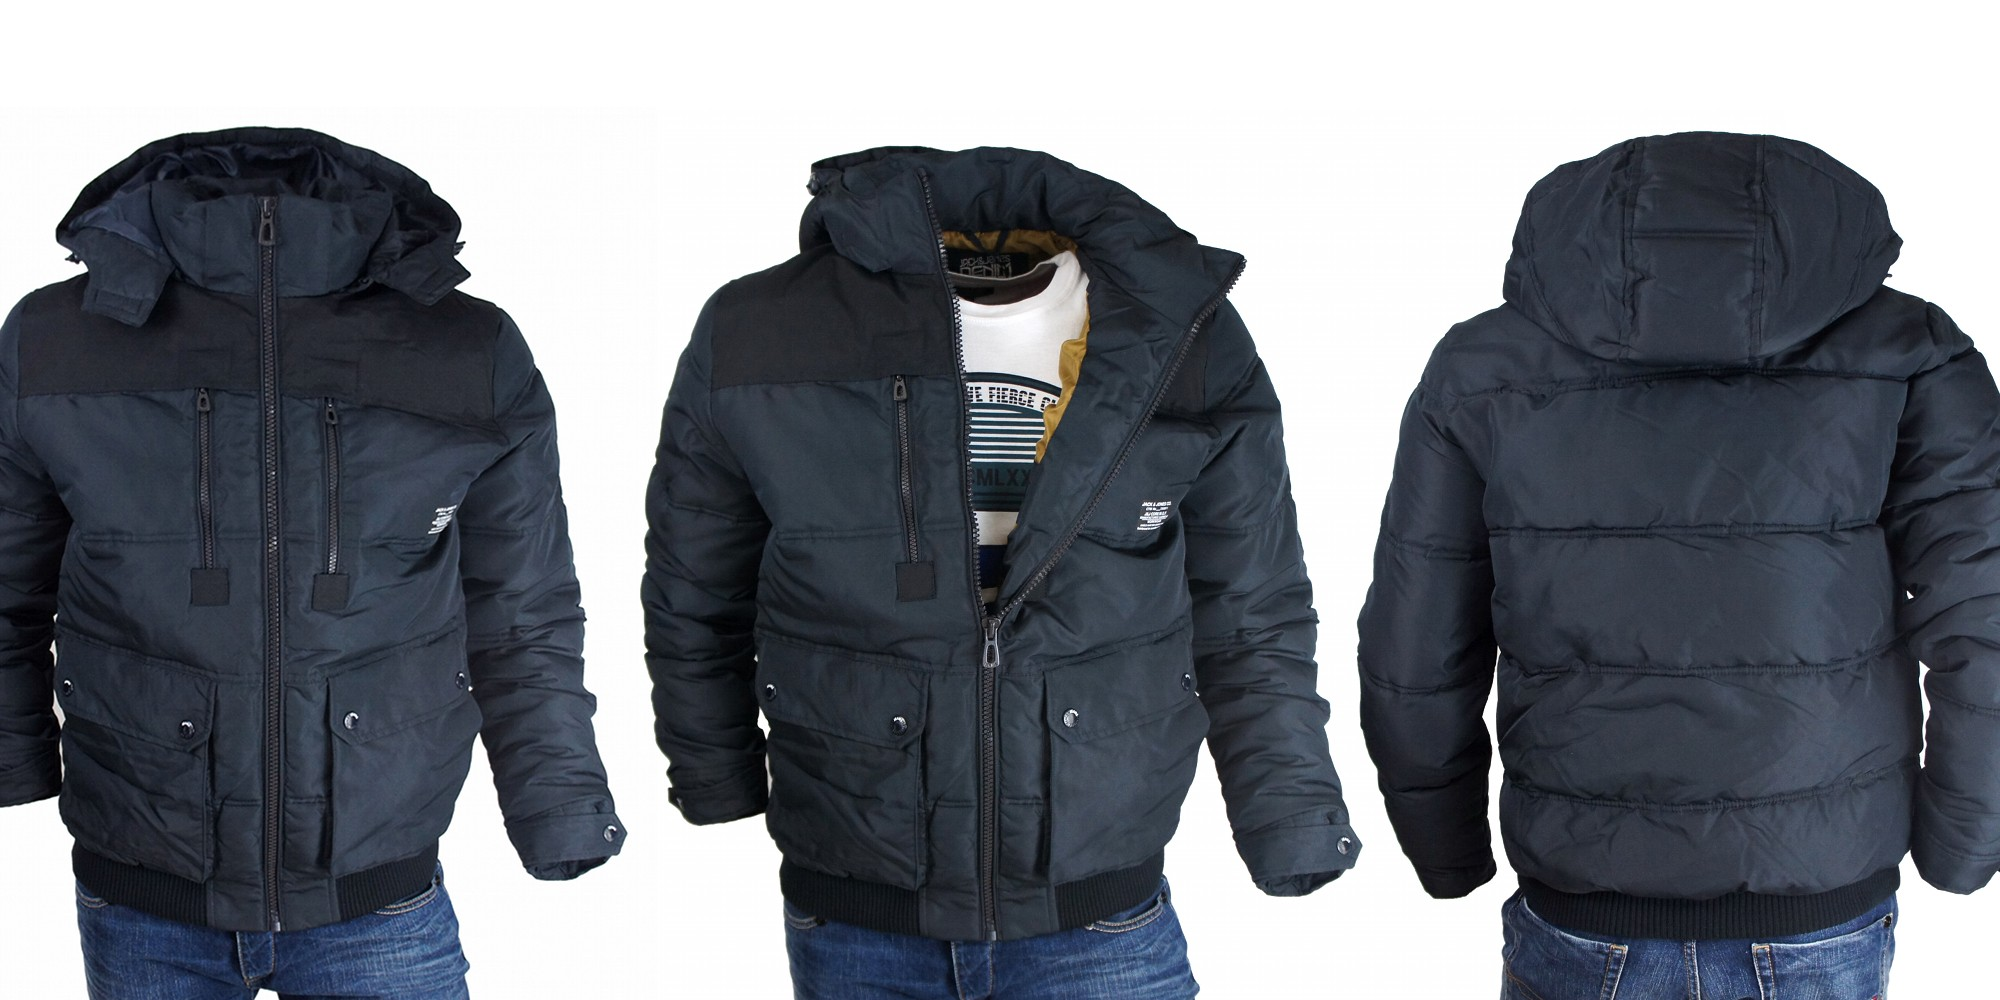 jack jones jacke mantel jacket winter rider jkt black navy s xxl ebay. Black Bedroom Furniture Sets. Home Design Ideas